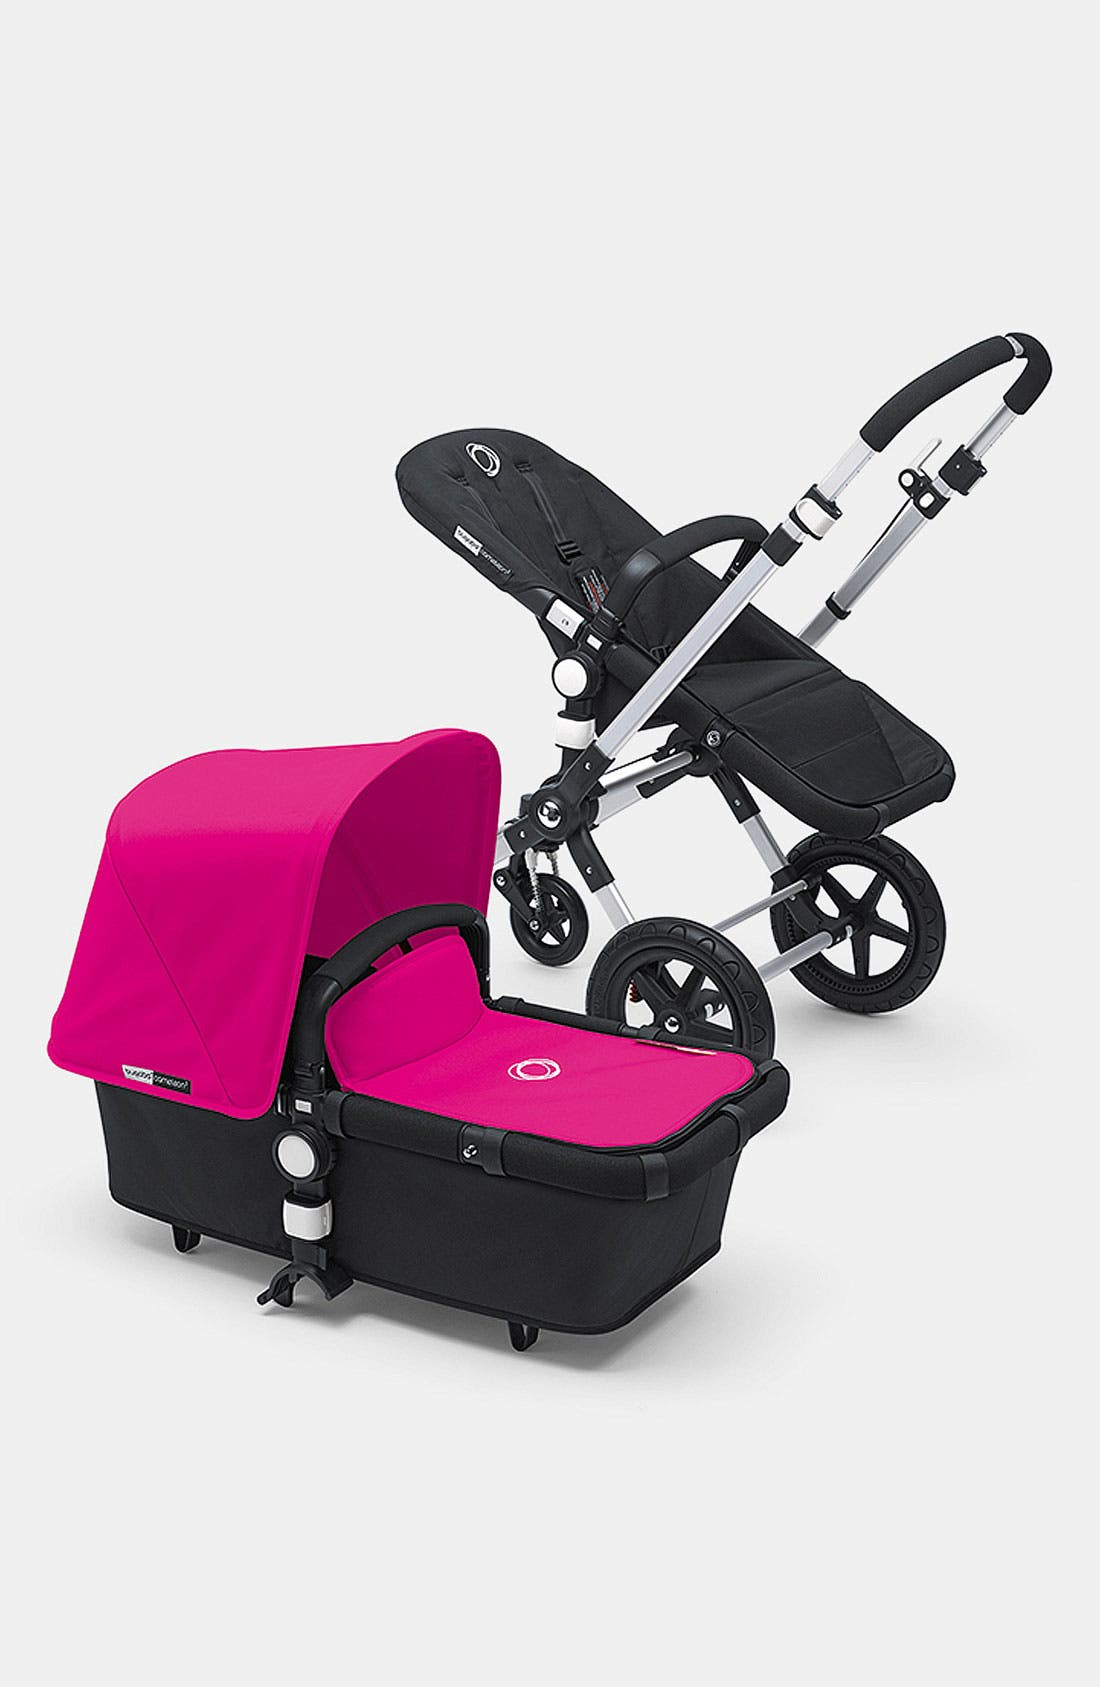 Alternate Image 1 Selected - Bugaboo Cameleon & Cameleon³ Stroller Tailored Fabric Set